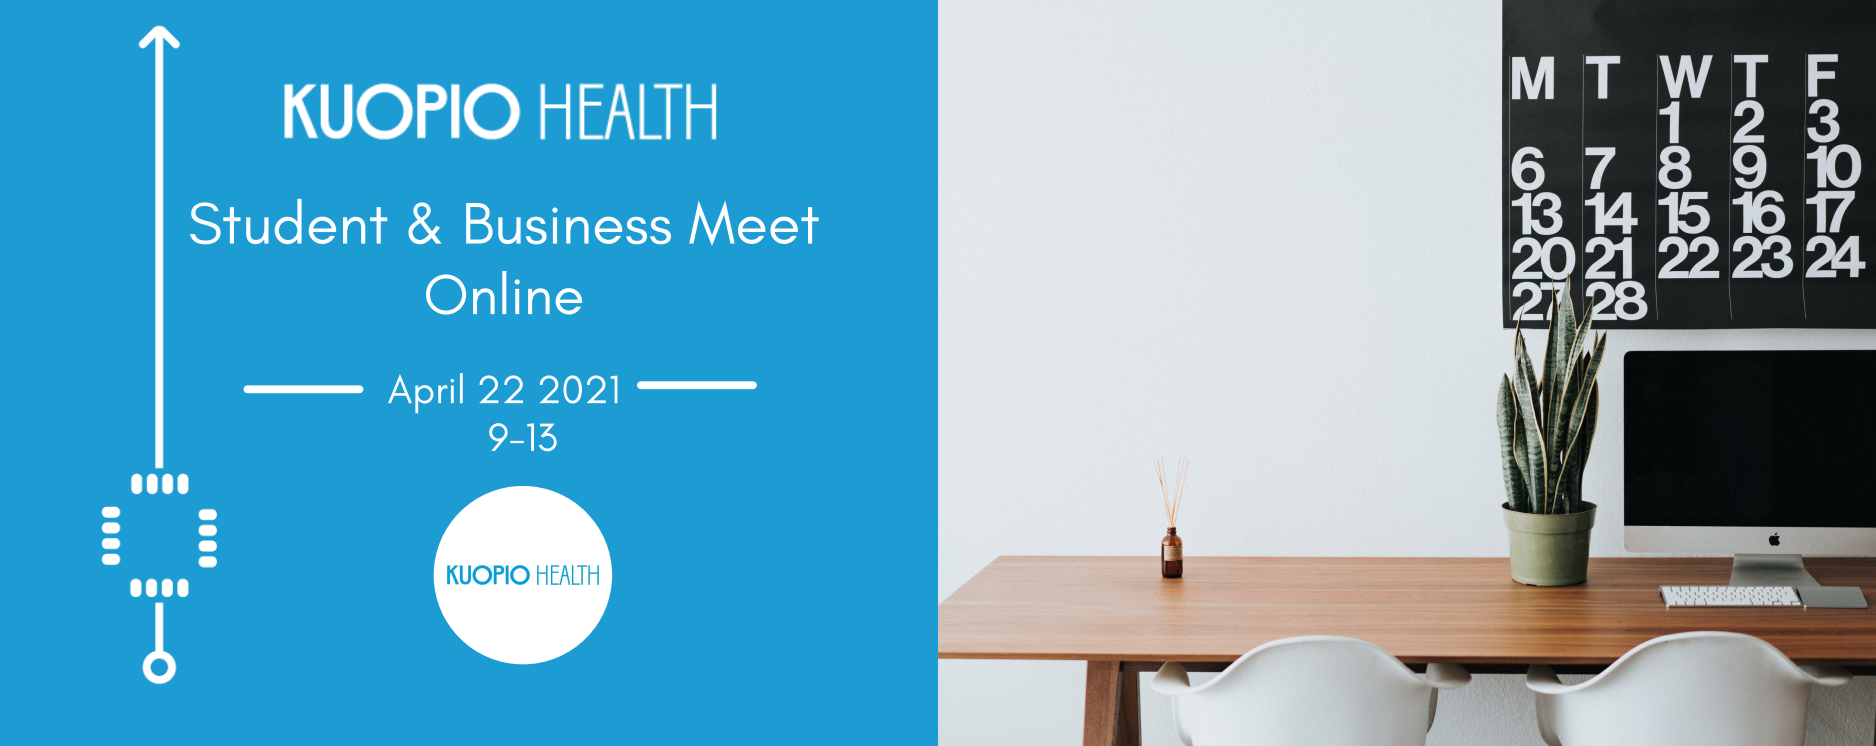 Kuopio Health Student & Business Meet